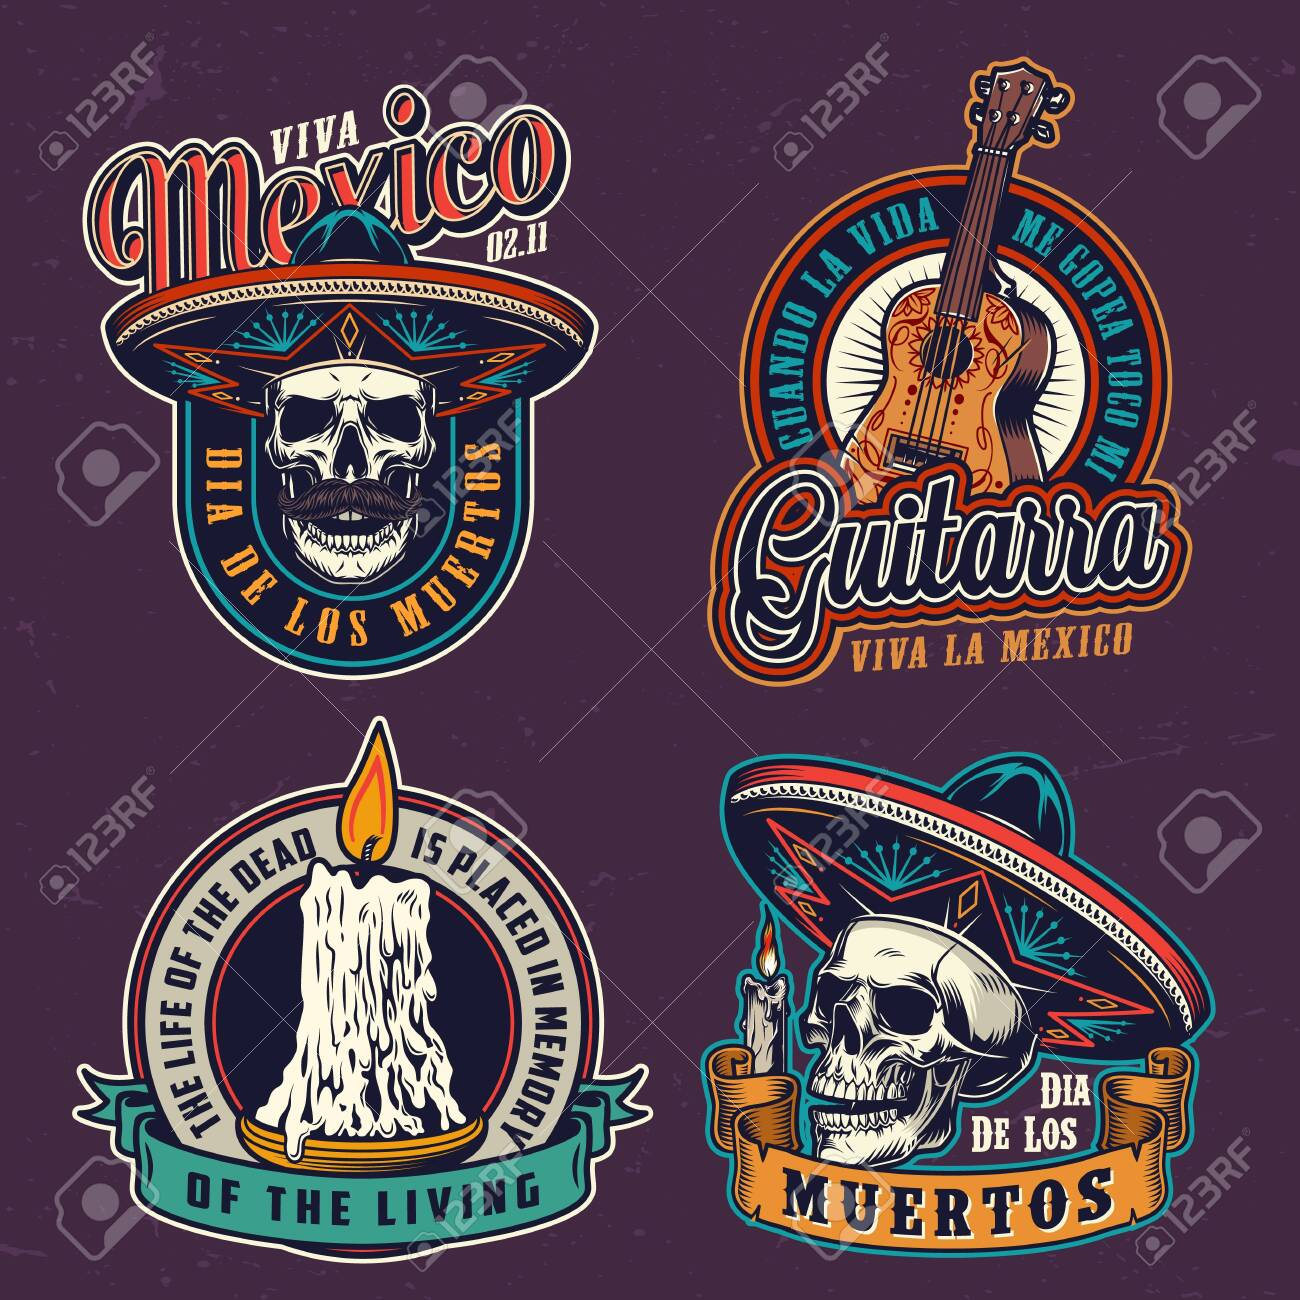 Dia De Los Muertos vintage labels with acoustic guitar skulls in sombrero hats and burning candles isolated vector illustration - 128591732